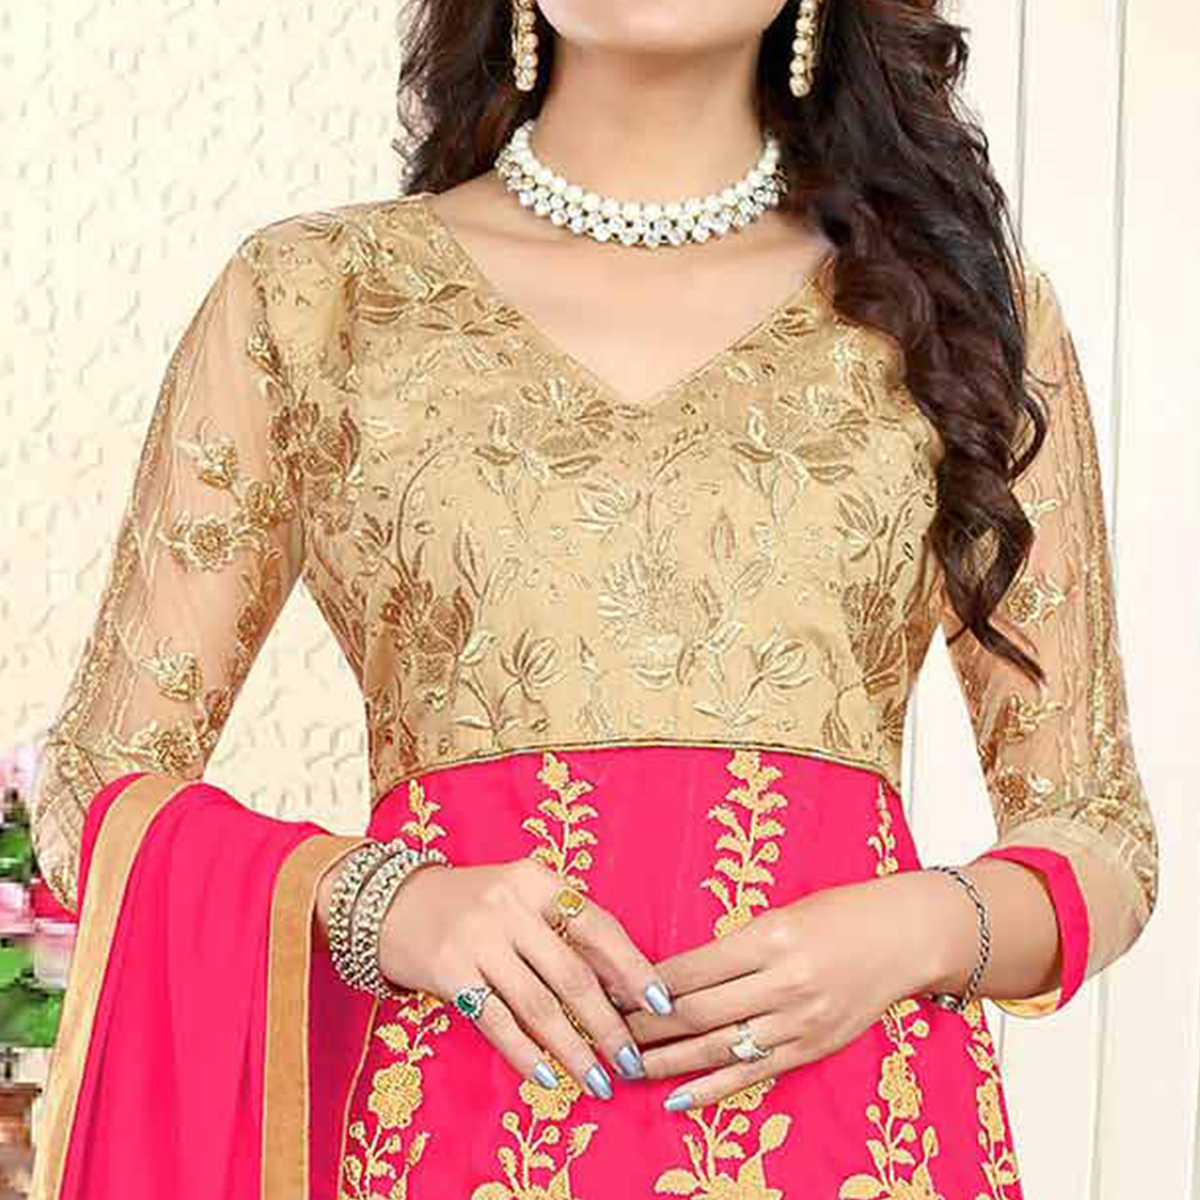 Mesmerising Beige-Fuschia Pink Colored Heavy Embroidered Art Silk-Net Lehenga / Anarkali